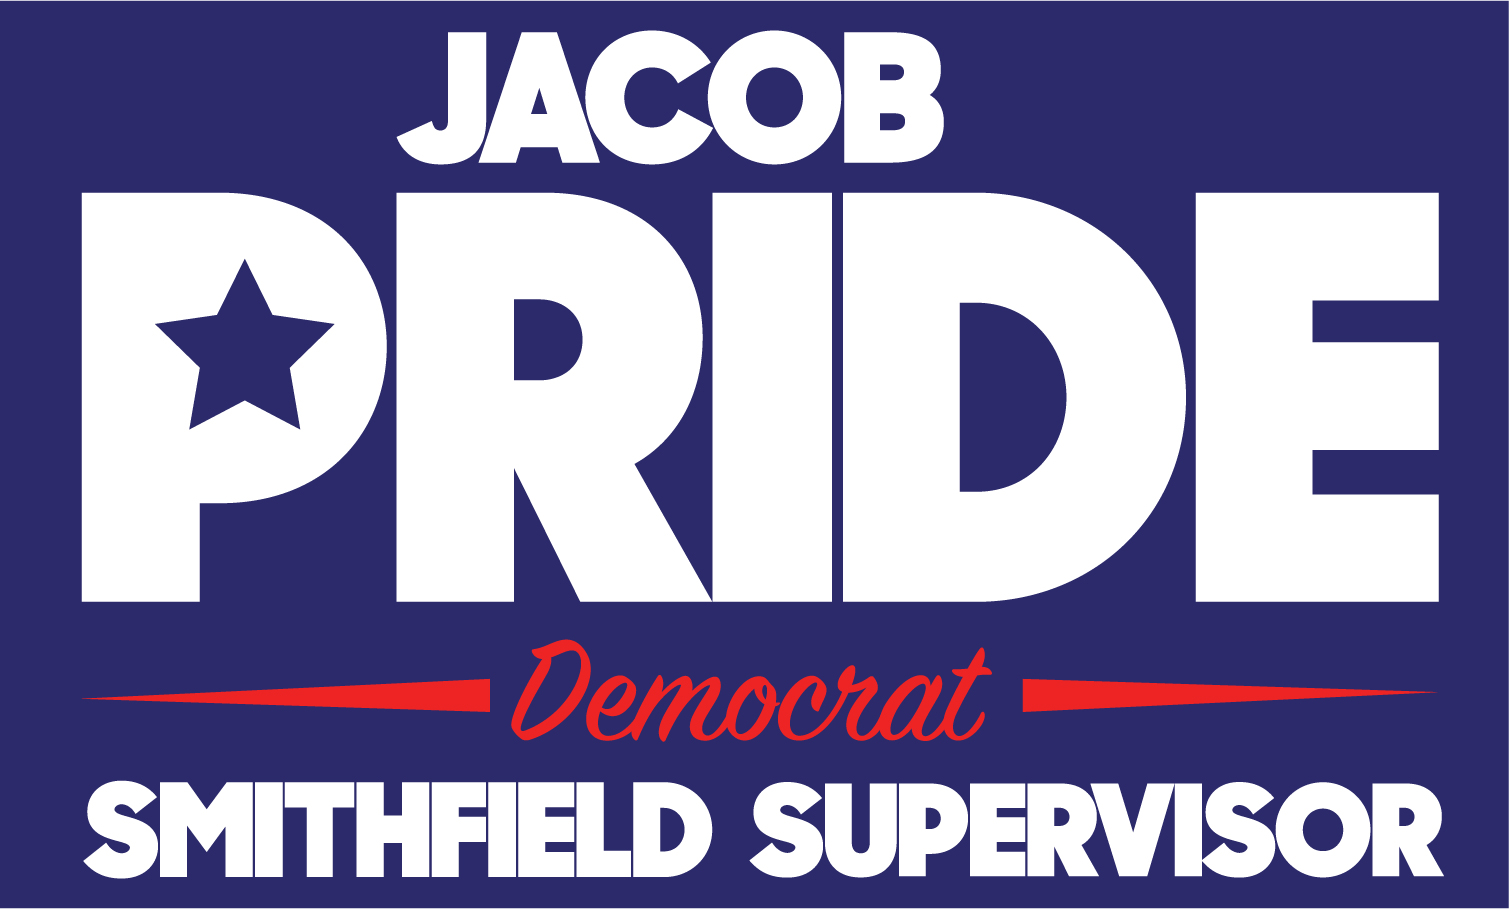 Friends of Jacob Pride